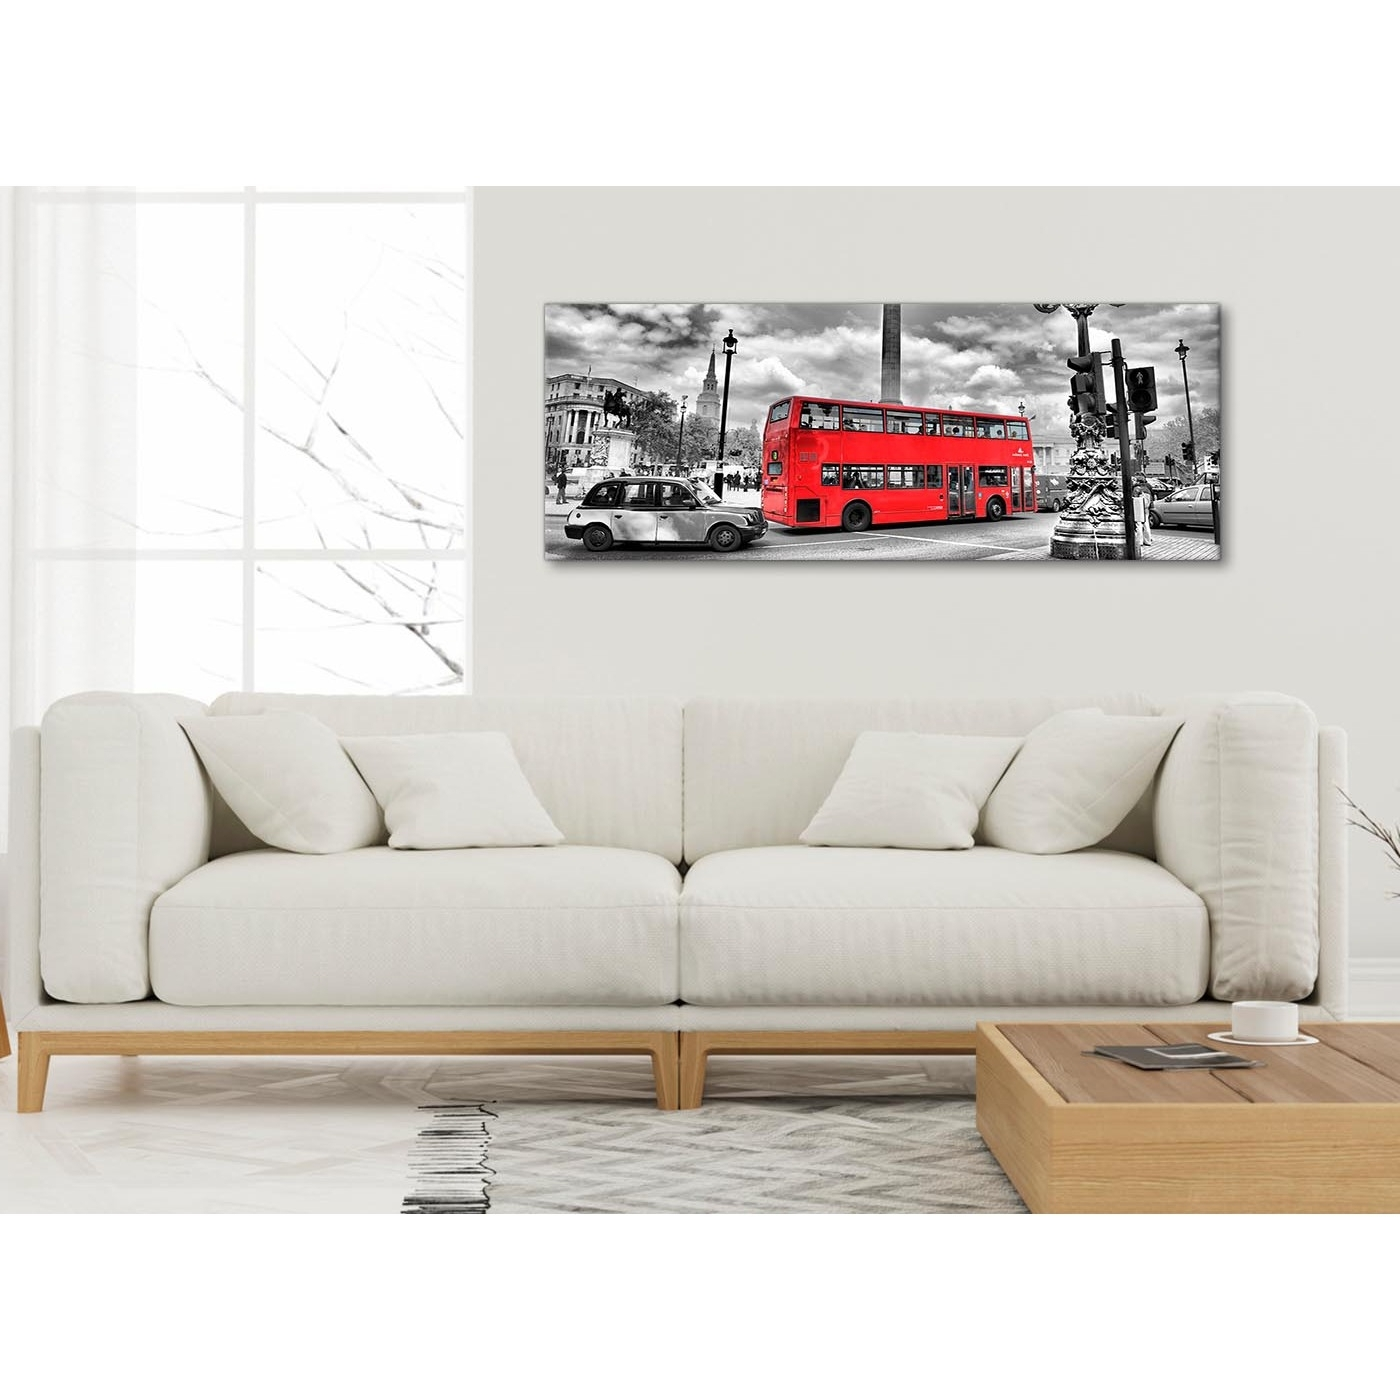 Red London Bus – Street Scene Cityscape Bedroom Canvas Pictures Inside Well Known London Scene Wall Art (View 13 of 15)